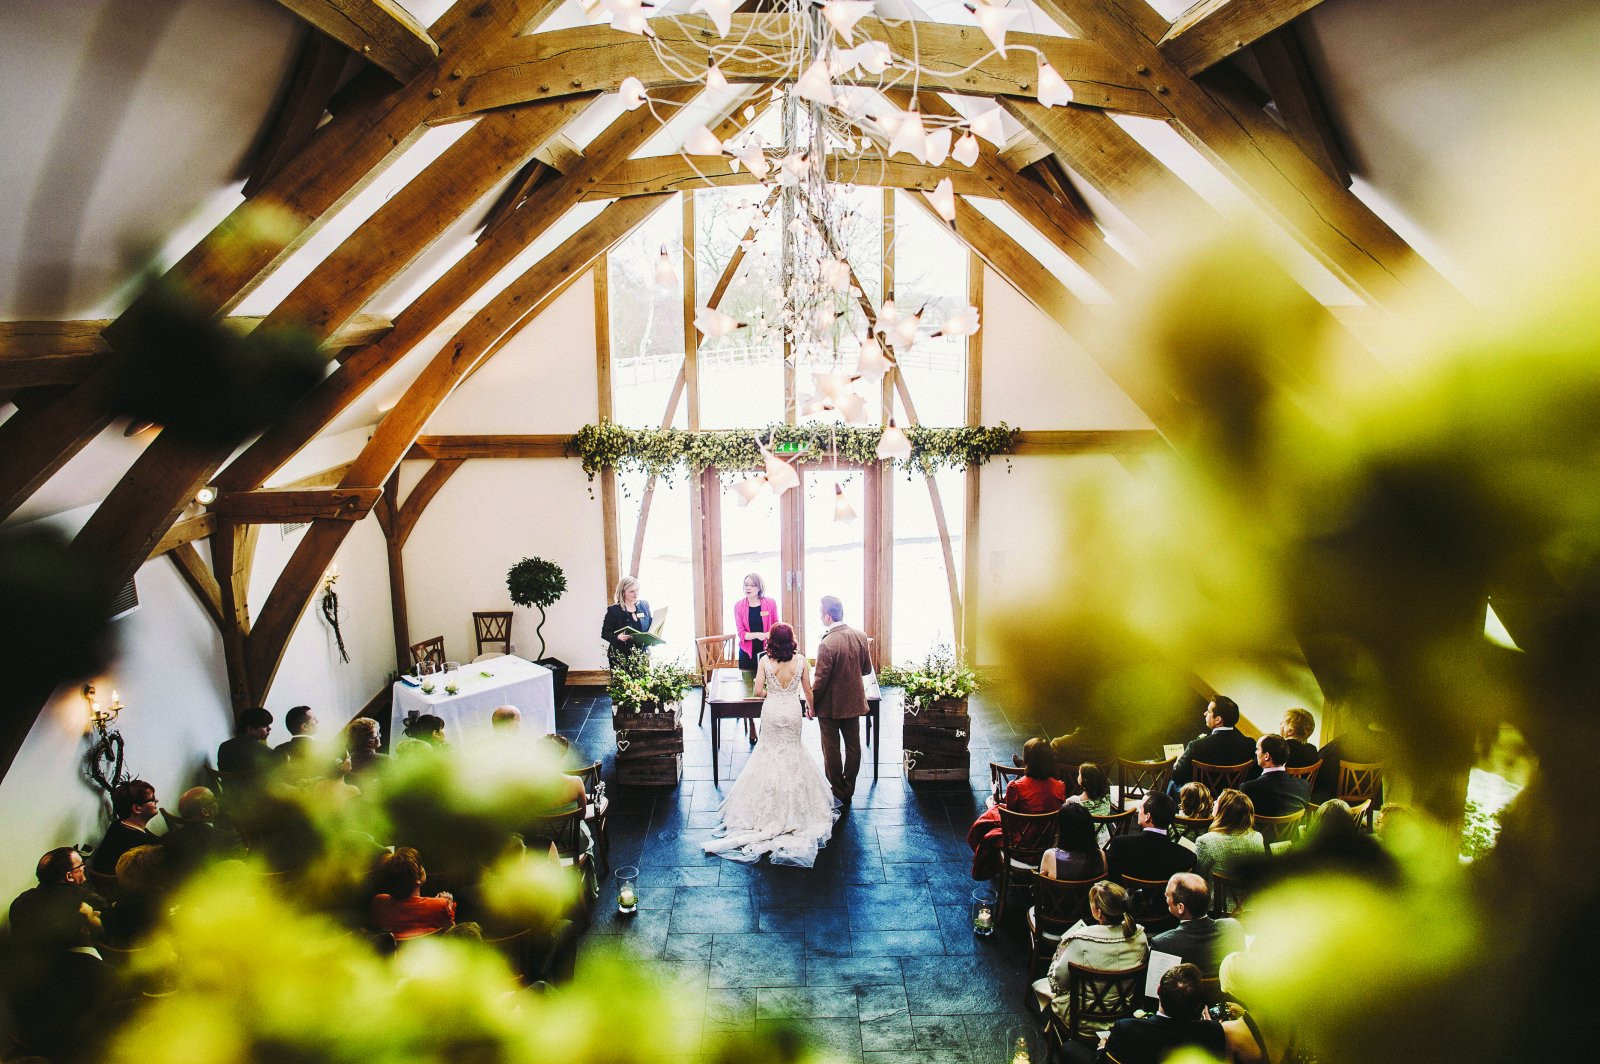 Mythe Barn | Barn Wedding Venues | WeddingPlanner.co.uk